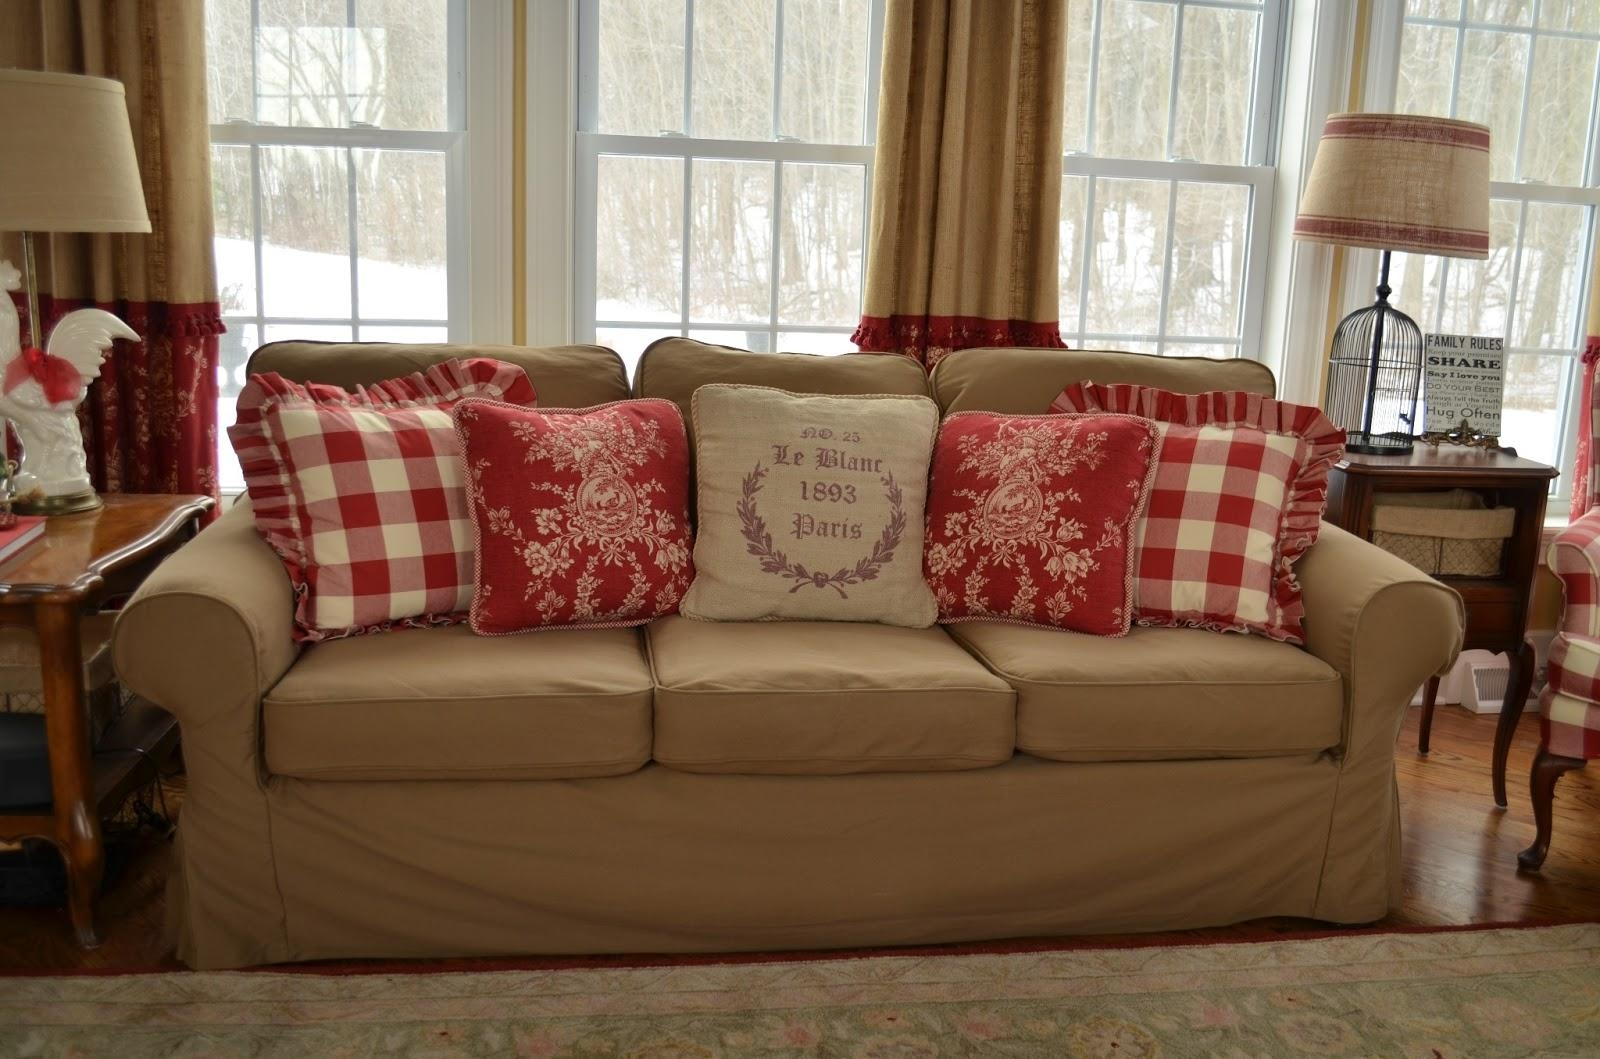 The Thrifty Gypsy: Slipcover Secret Throughout Arhaus Slipcovers (Image 19 of 20)